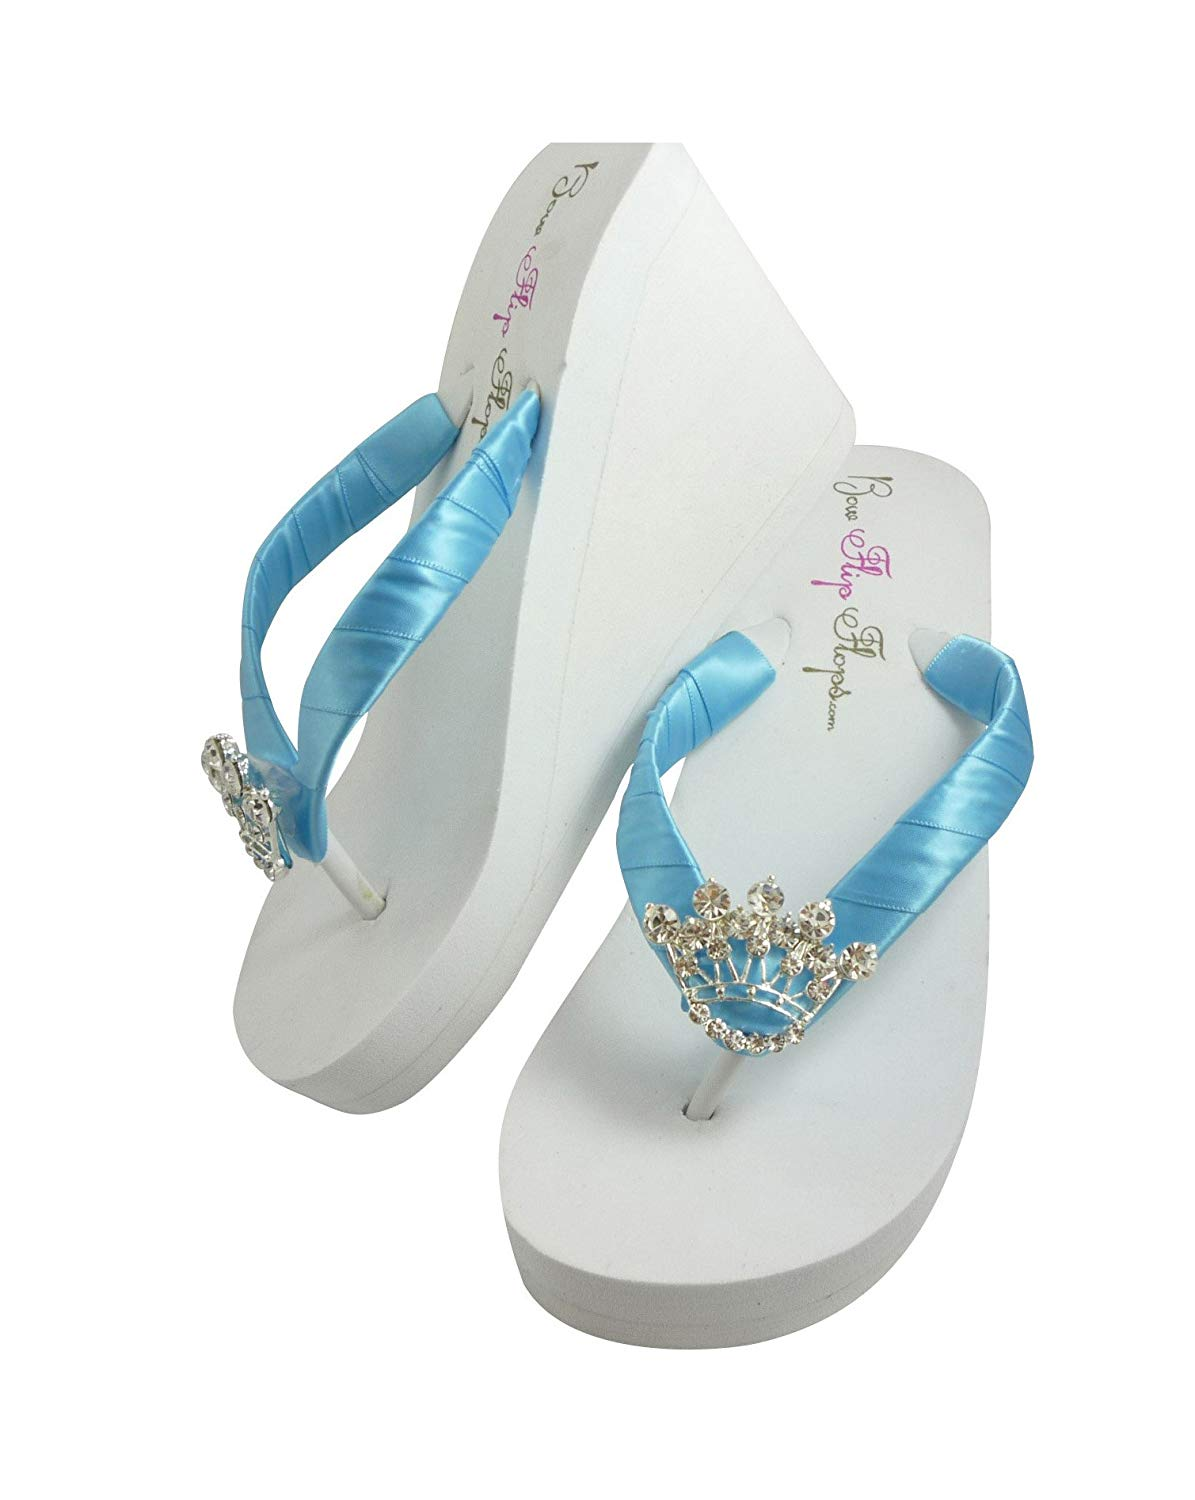 b4459a28c Get Quotations · Princess Wedding Wedge Flip Flops